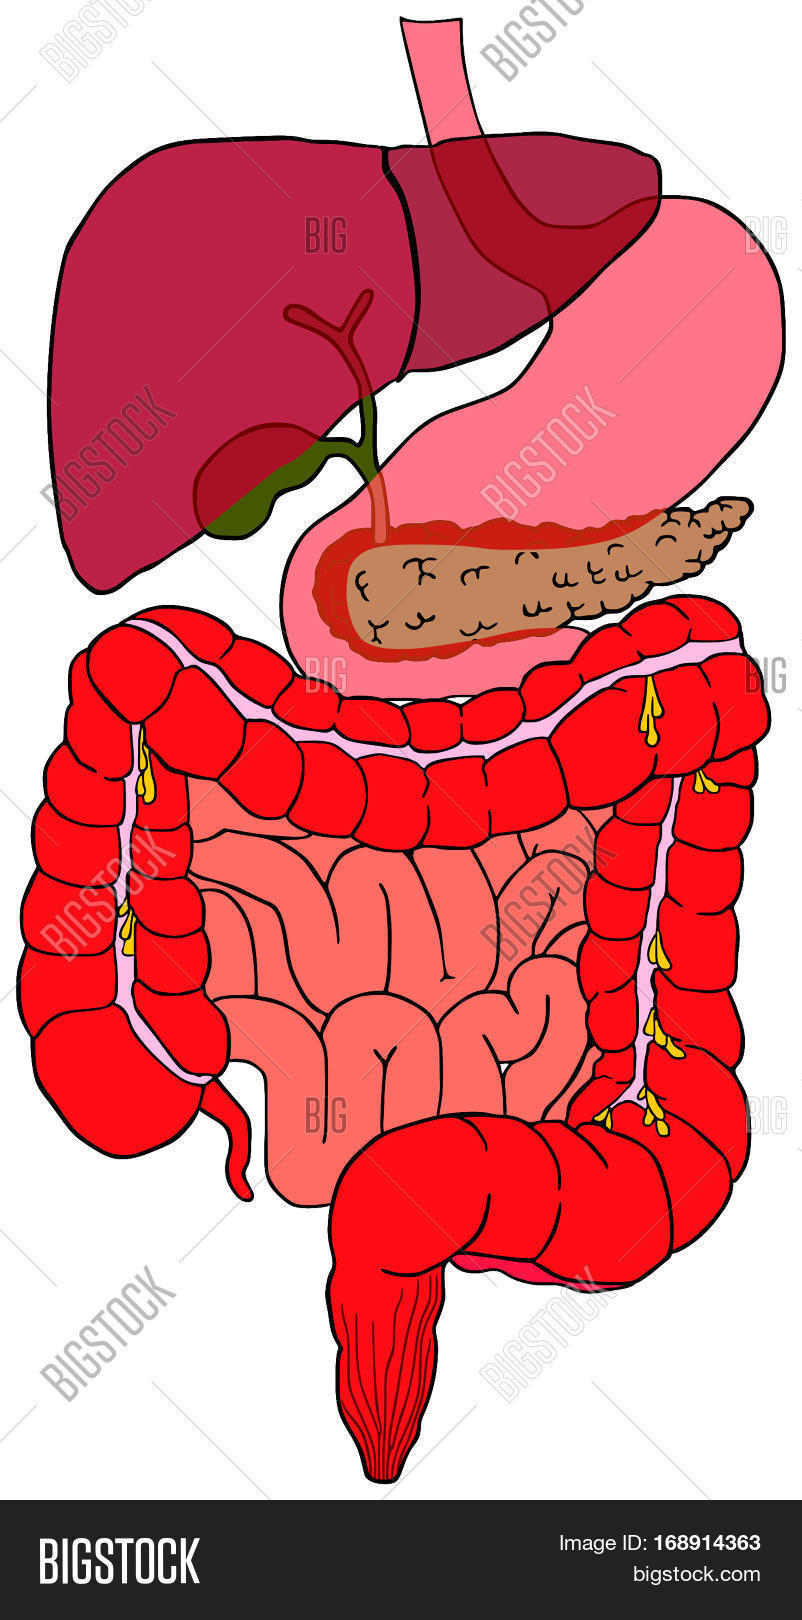 hight resolution of human digestive system tract vector diagram with all parts stomach bladder liver pancreas large small intestine